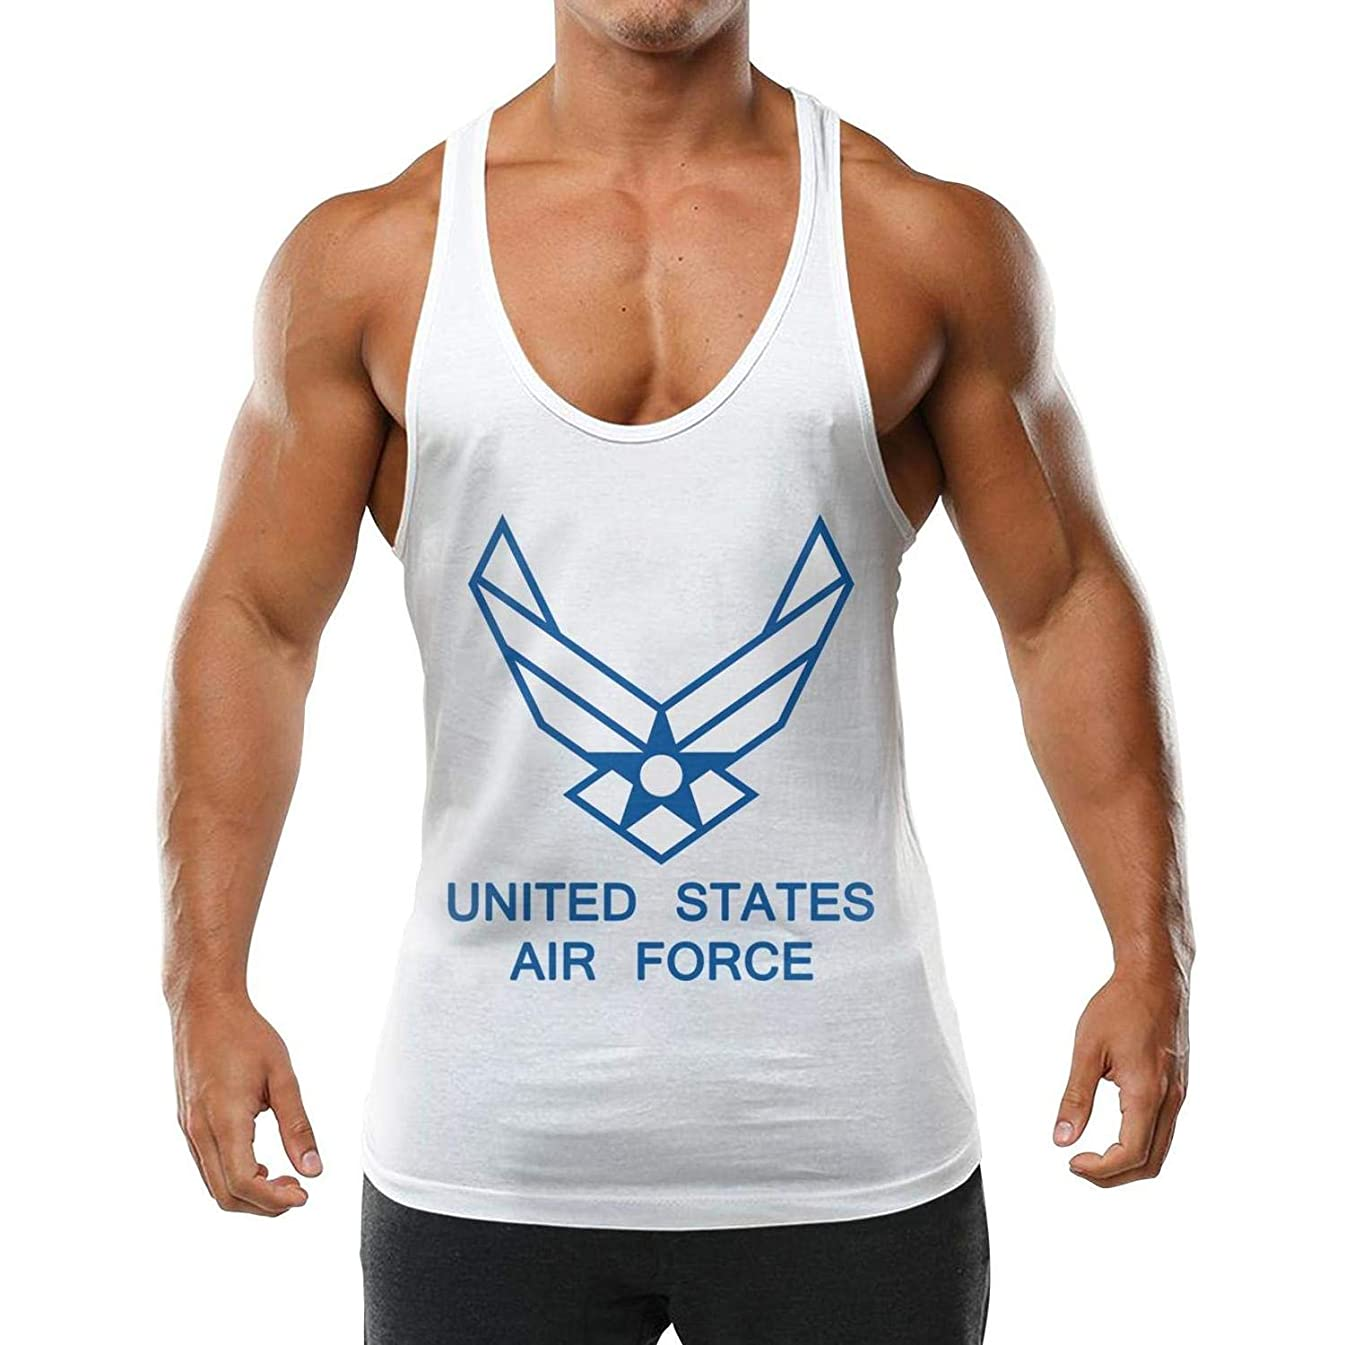 Branctank Us Air Force Tank Tops for Men?Workout Gym Stringer Sleeveless T Shirts for Men